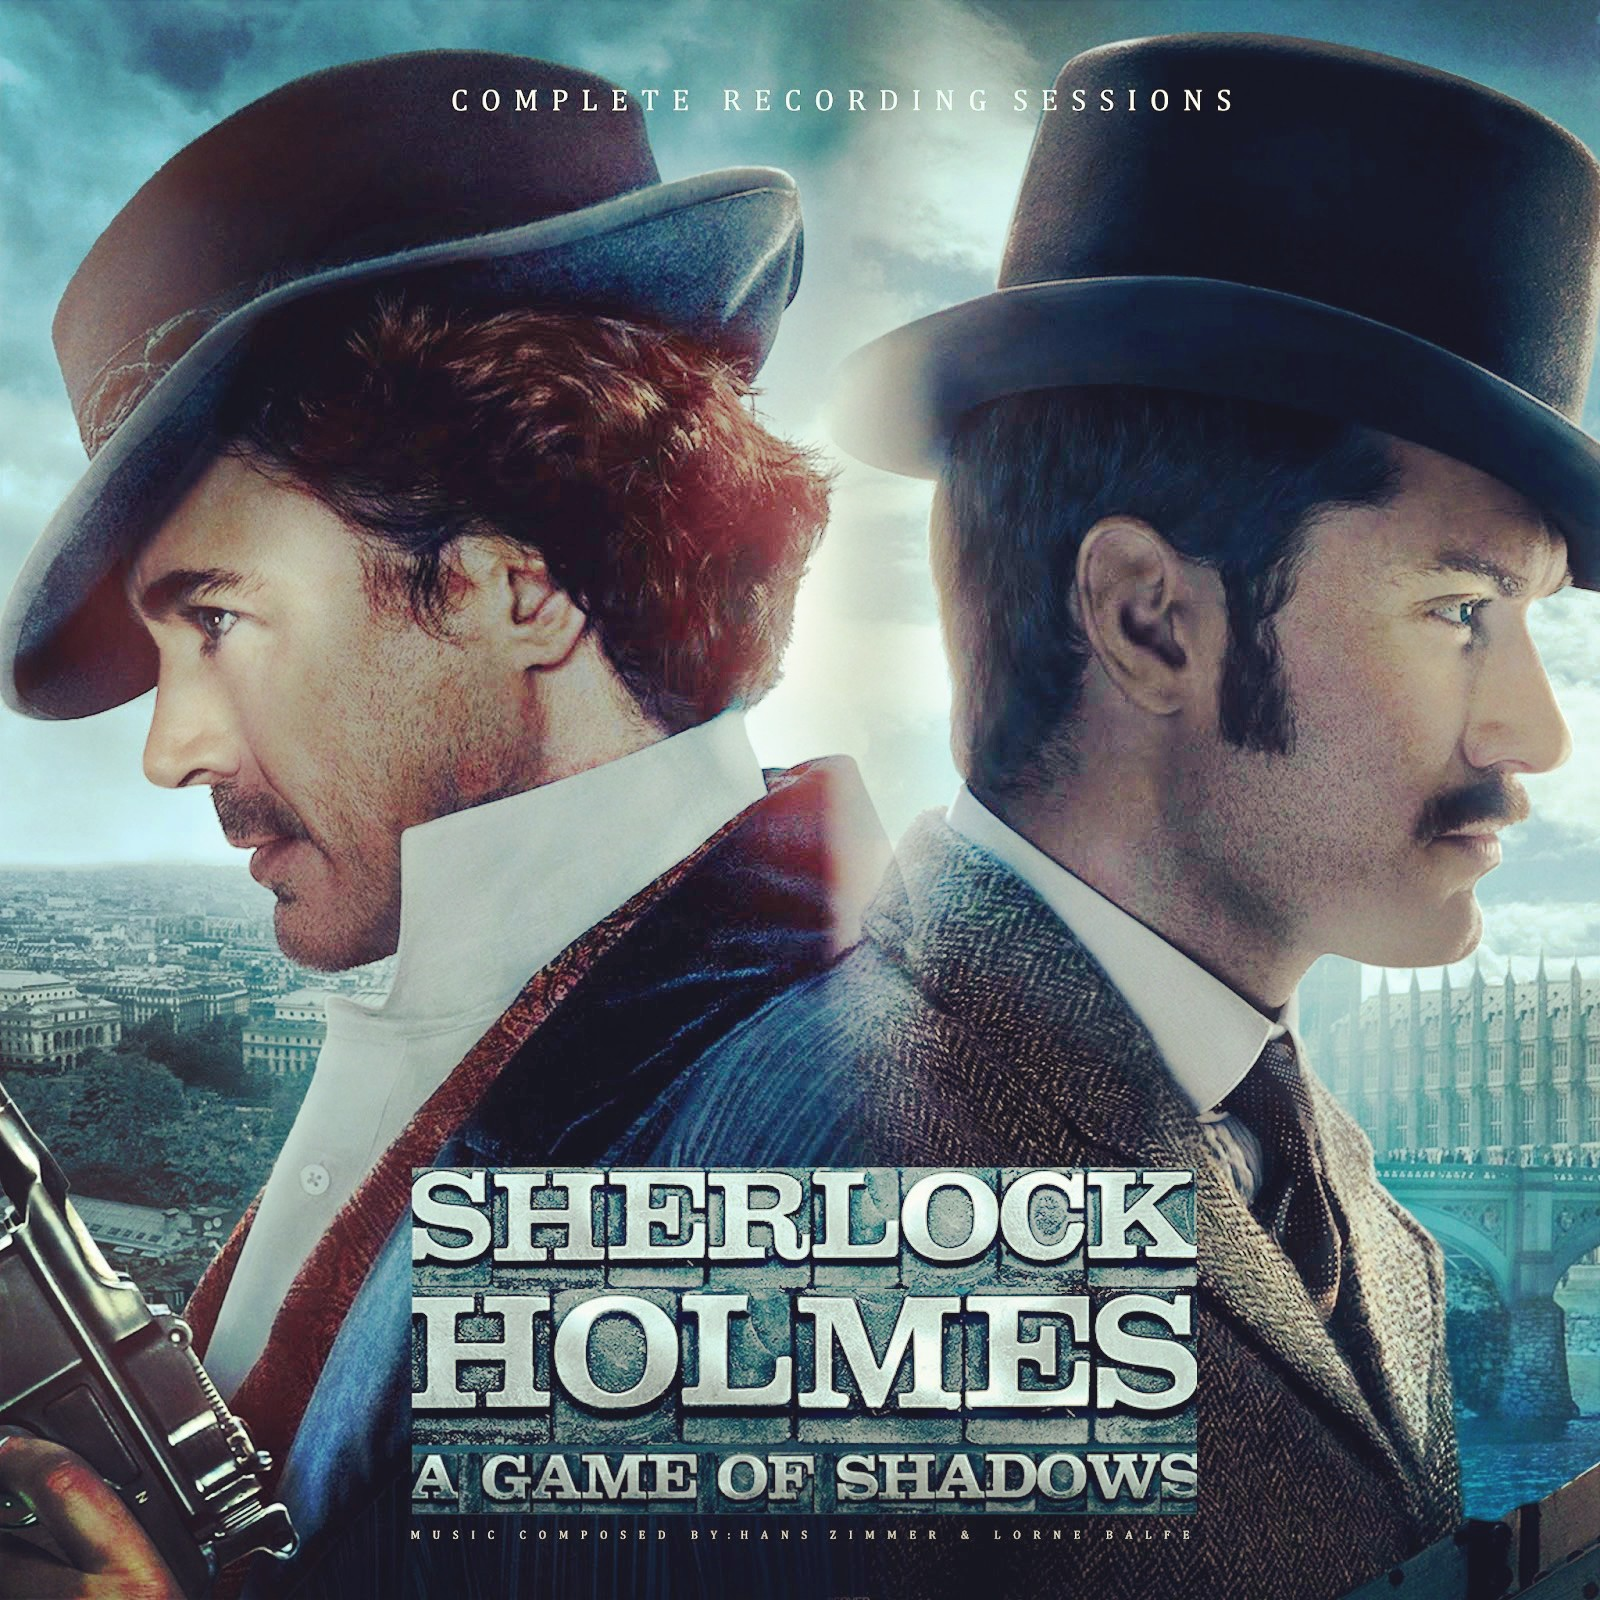 Sherlock holmes a game of shadows soundtrack